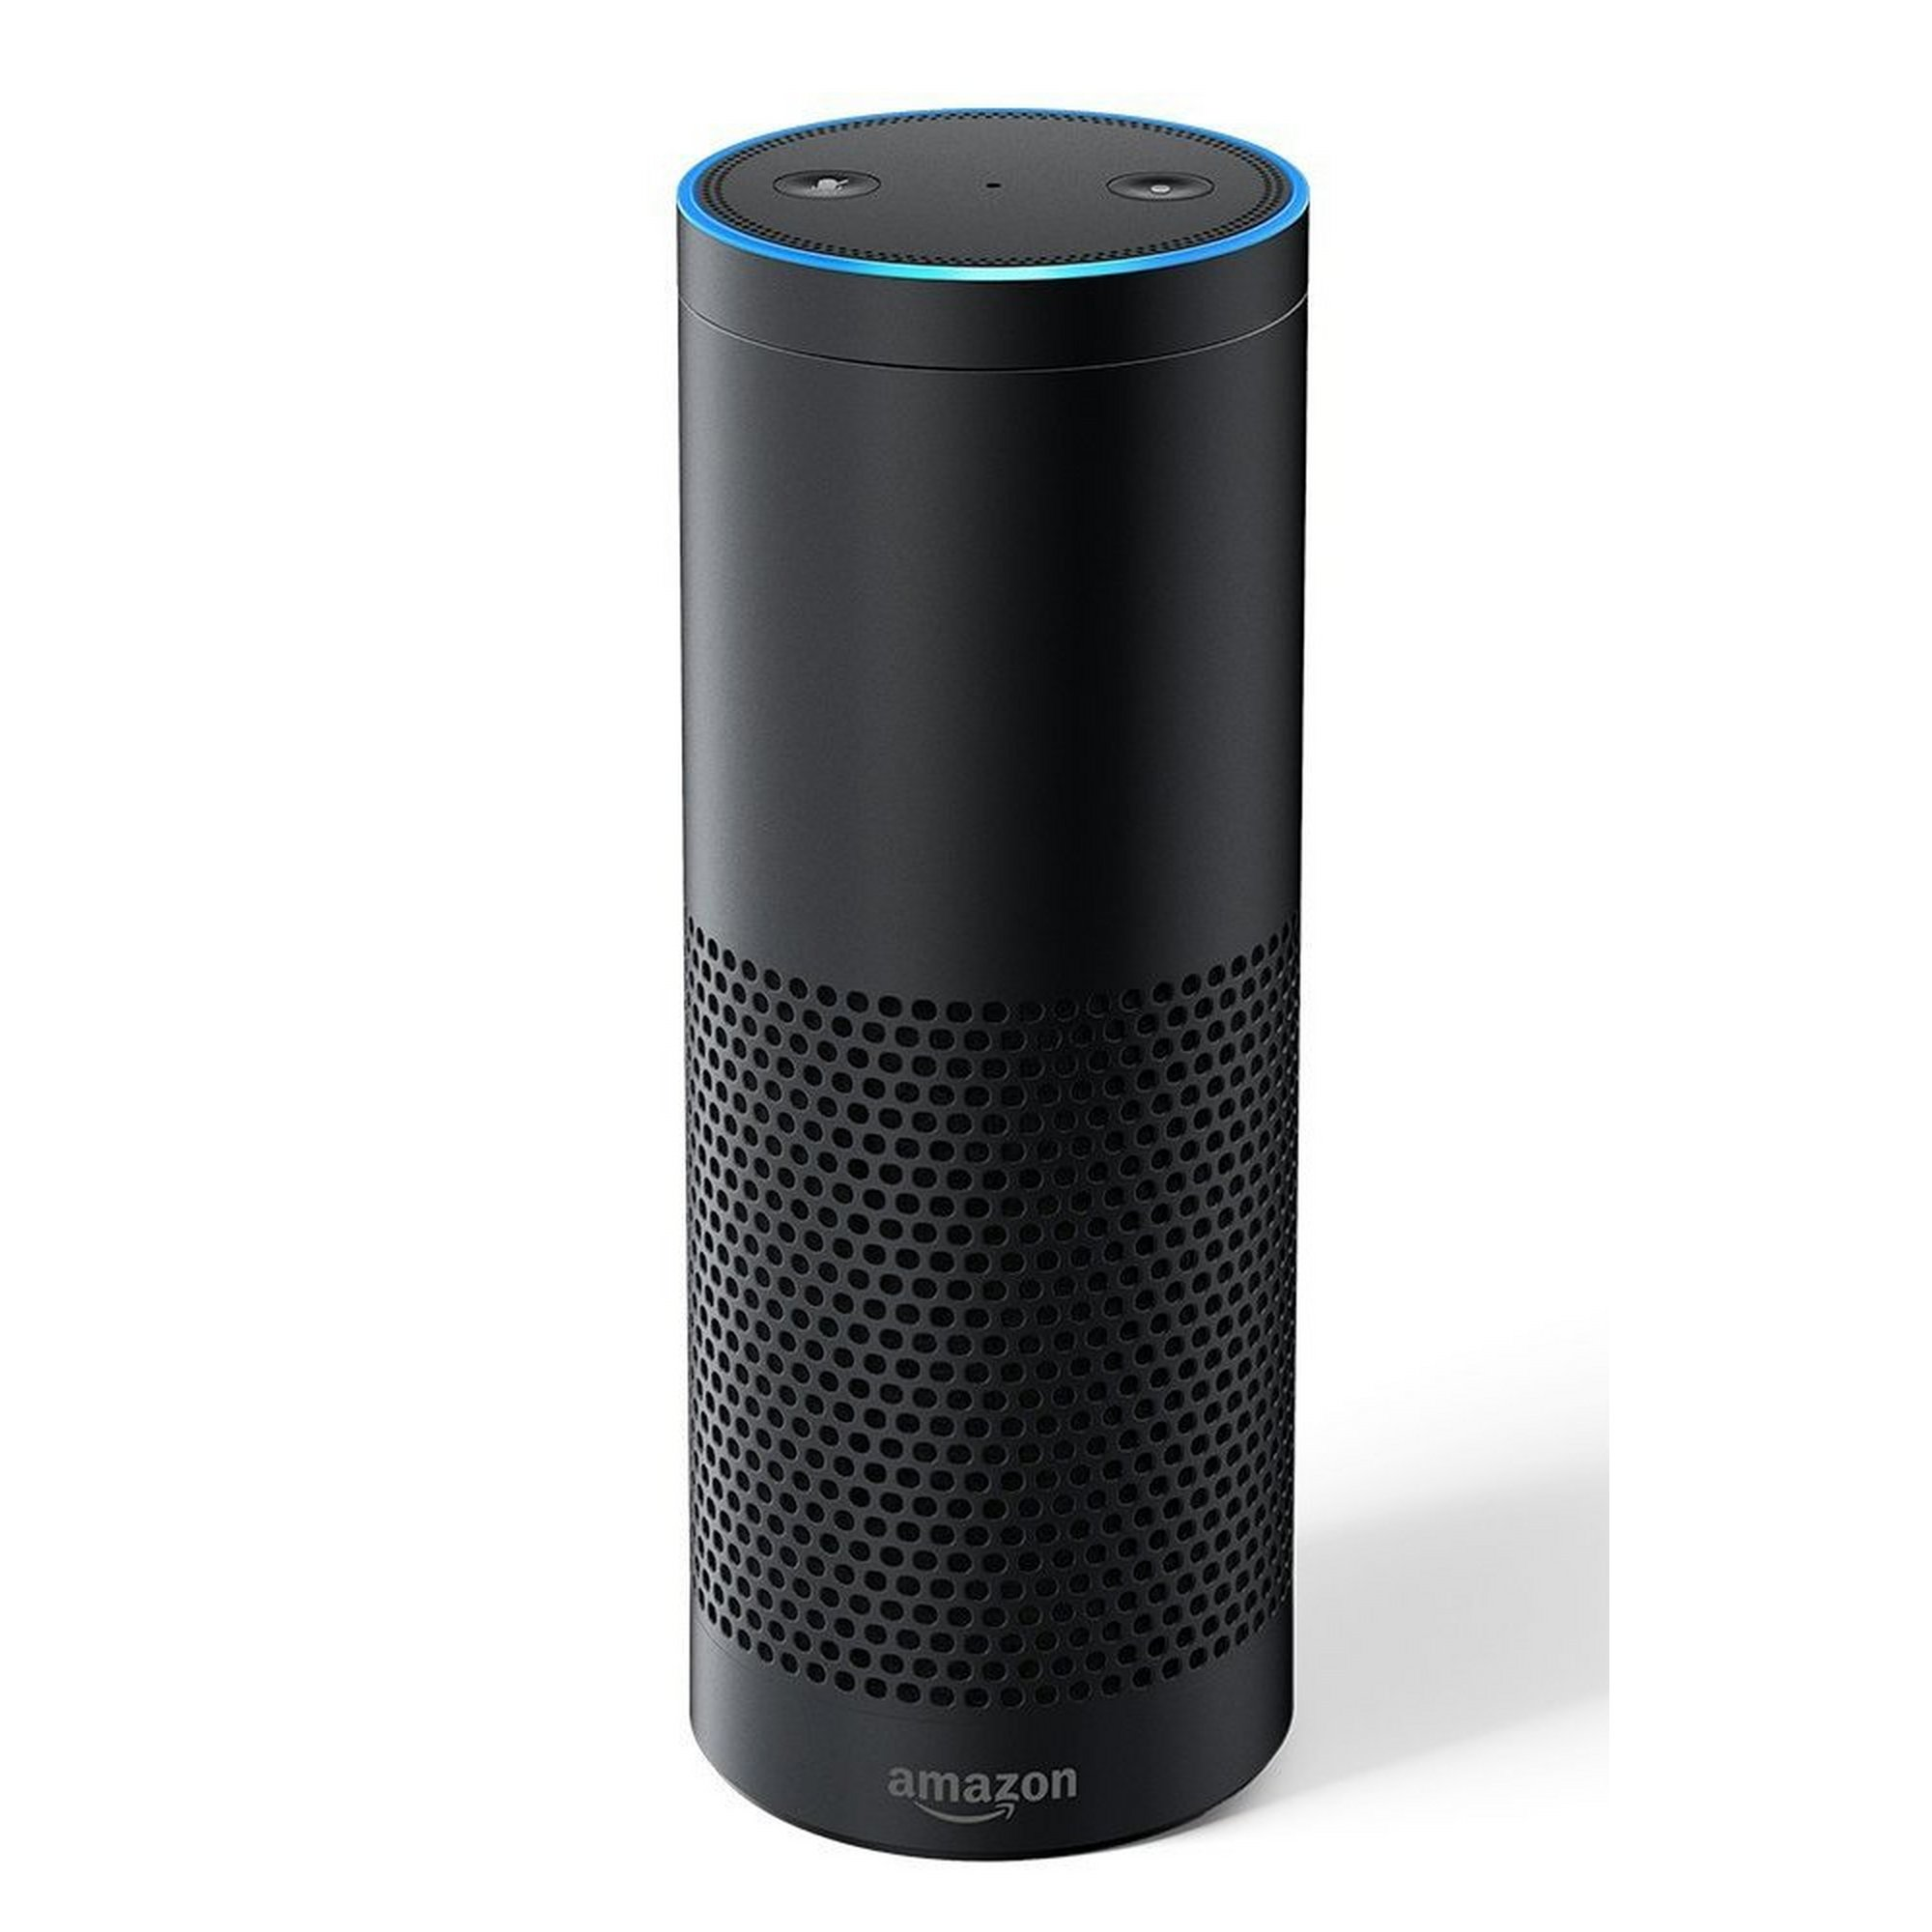 Image of Amazon Echo Plus